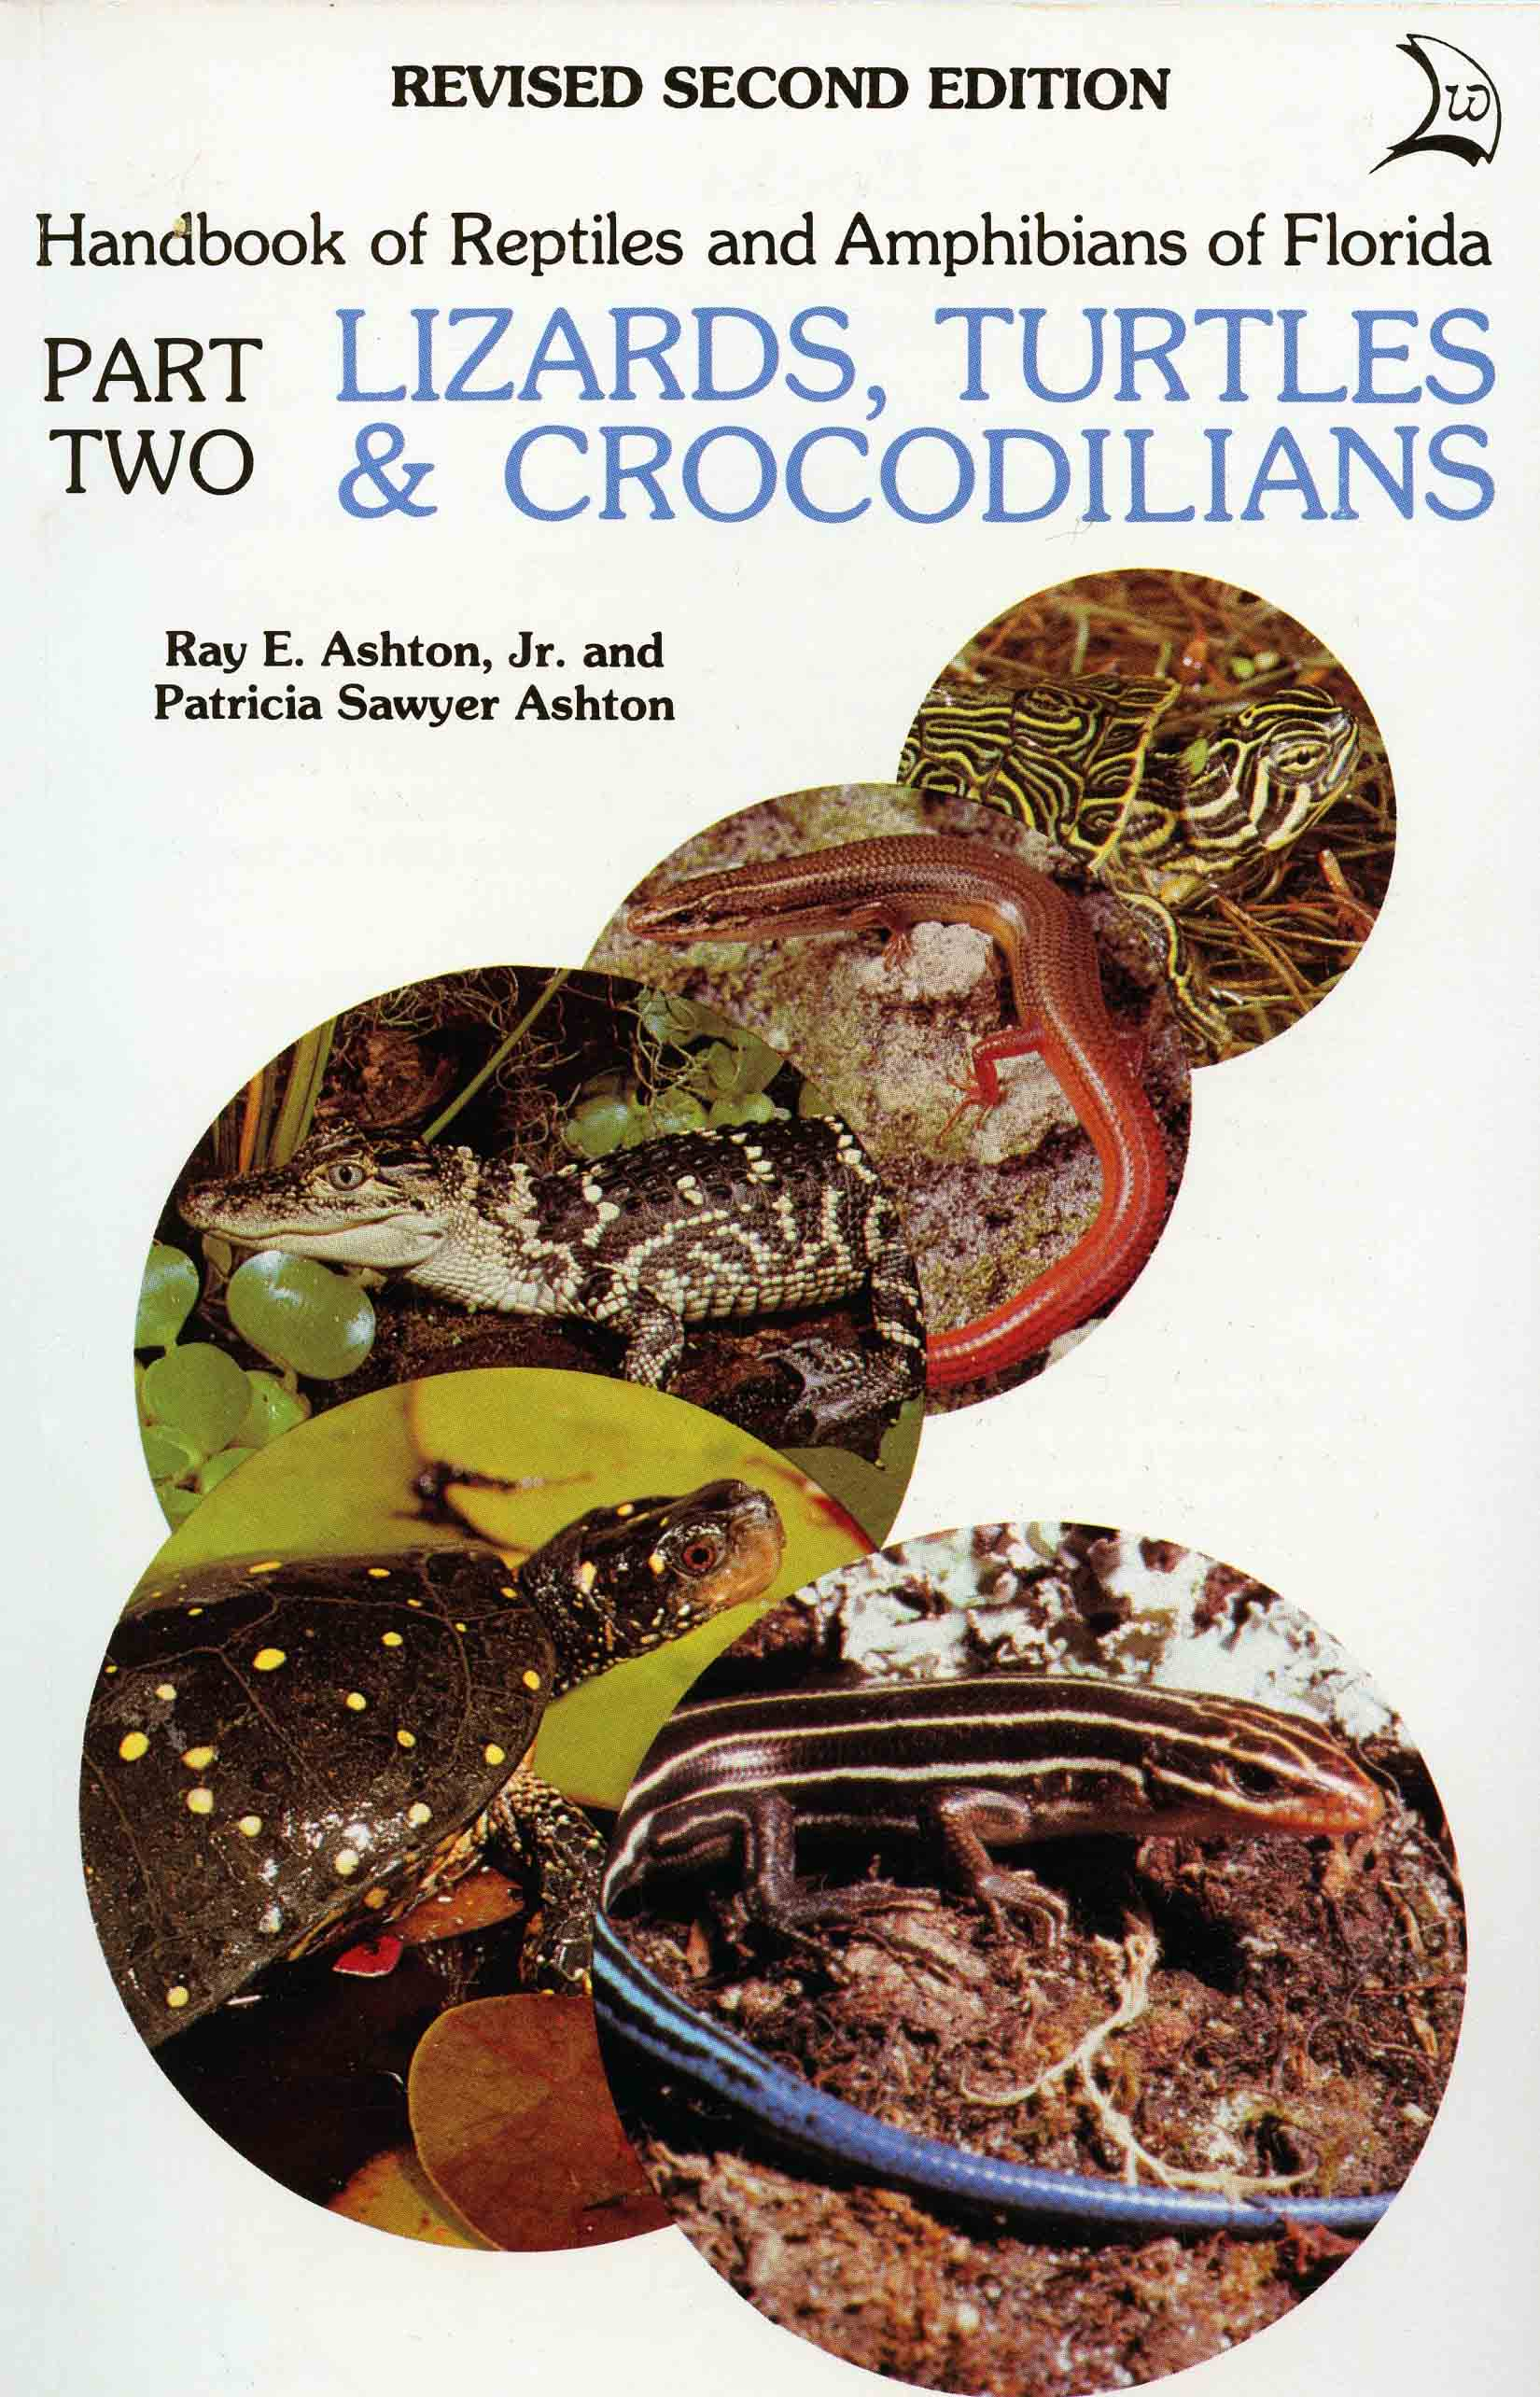 Image for Handbook of Reptiles and Amphibians of Florida, Part Two, Lizards, Turtles & Crocodilians